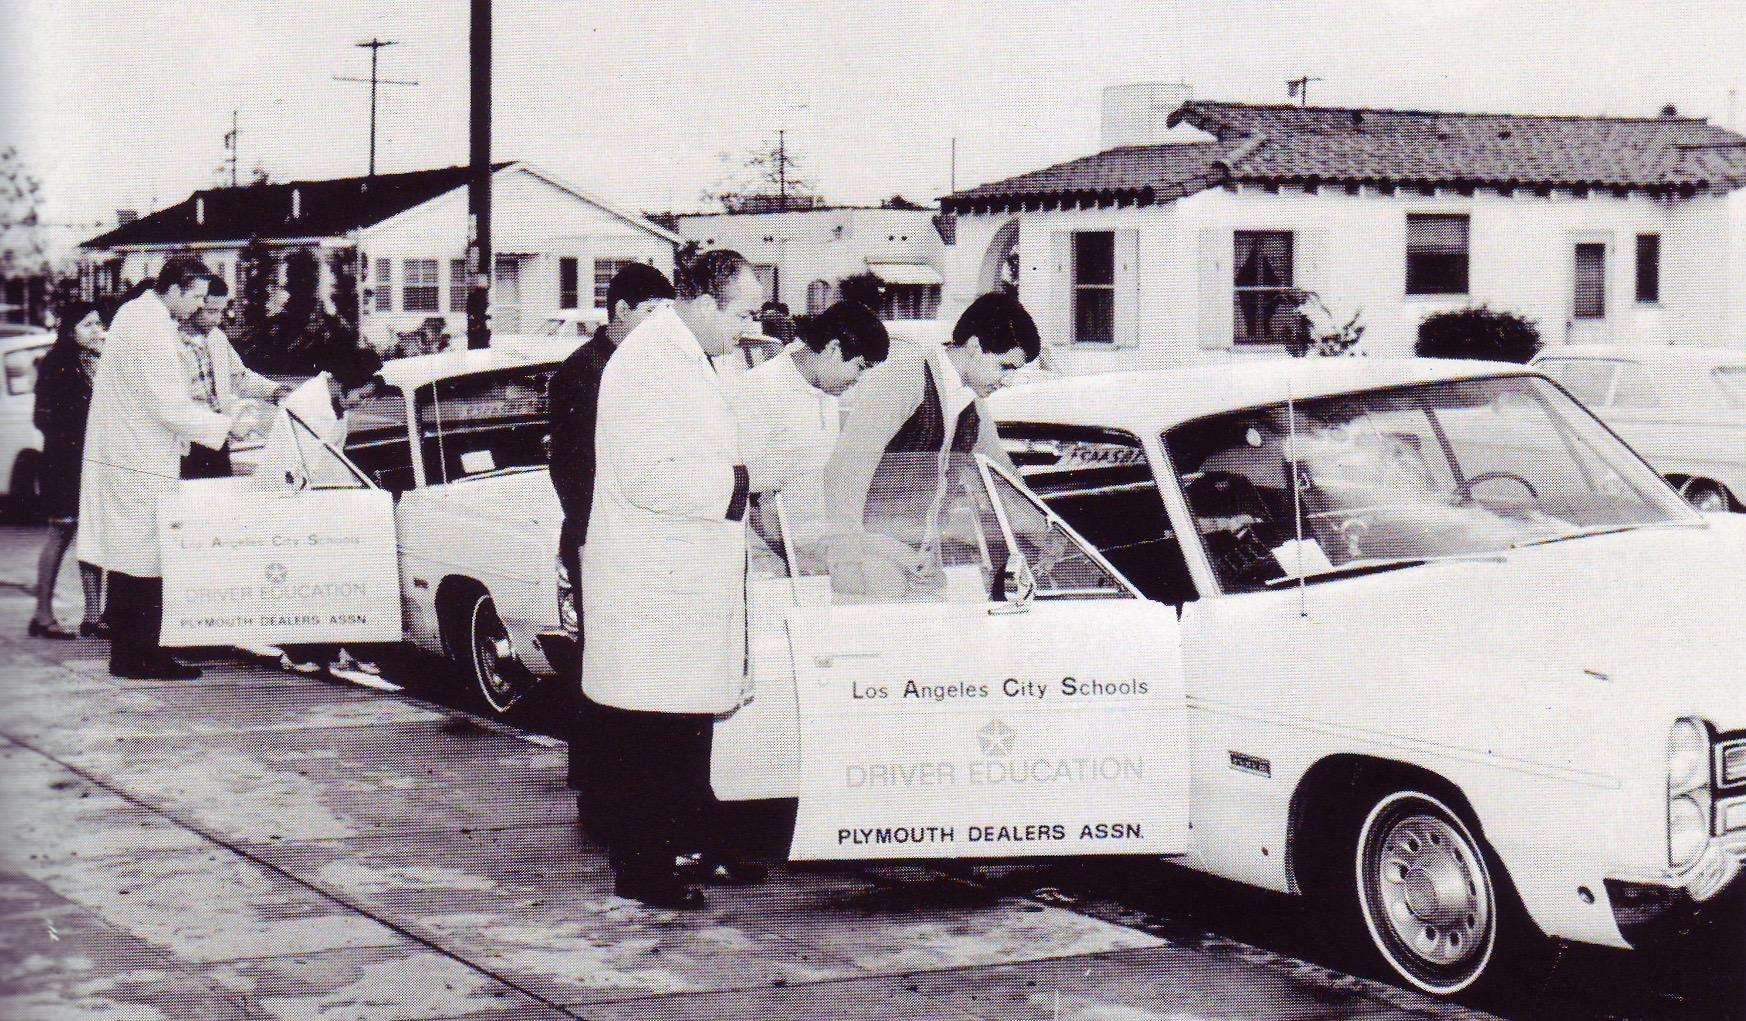 Driver's Education 1960s